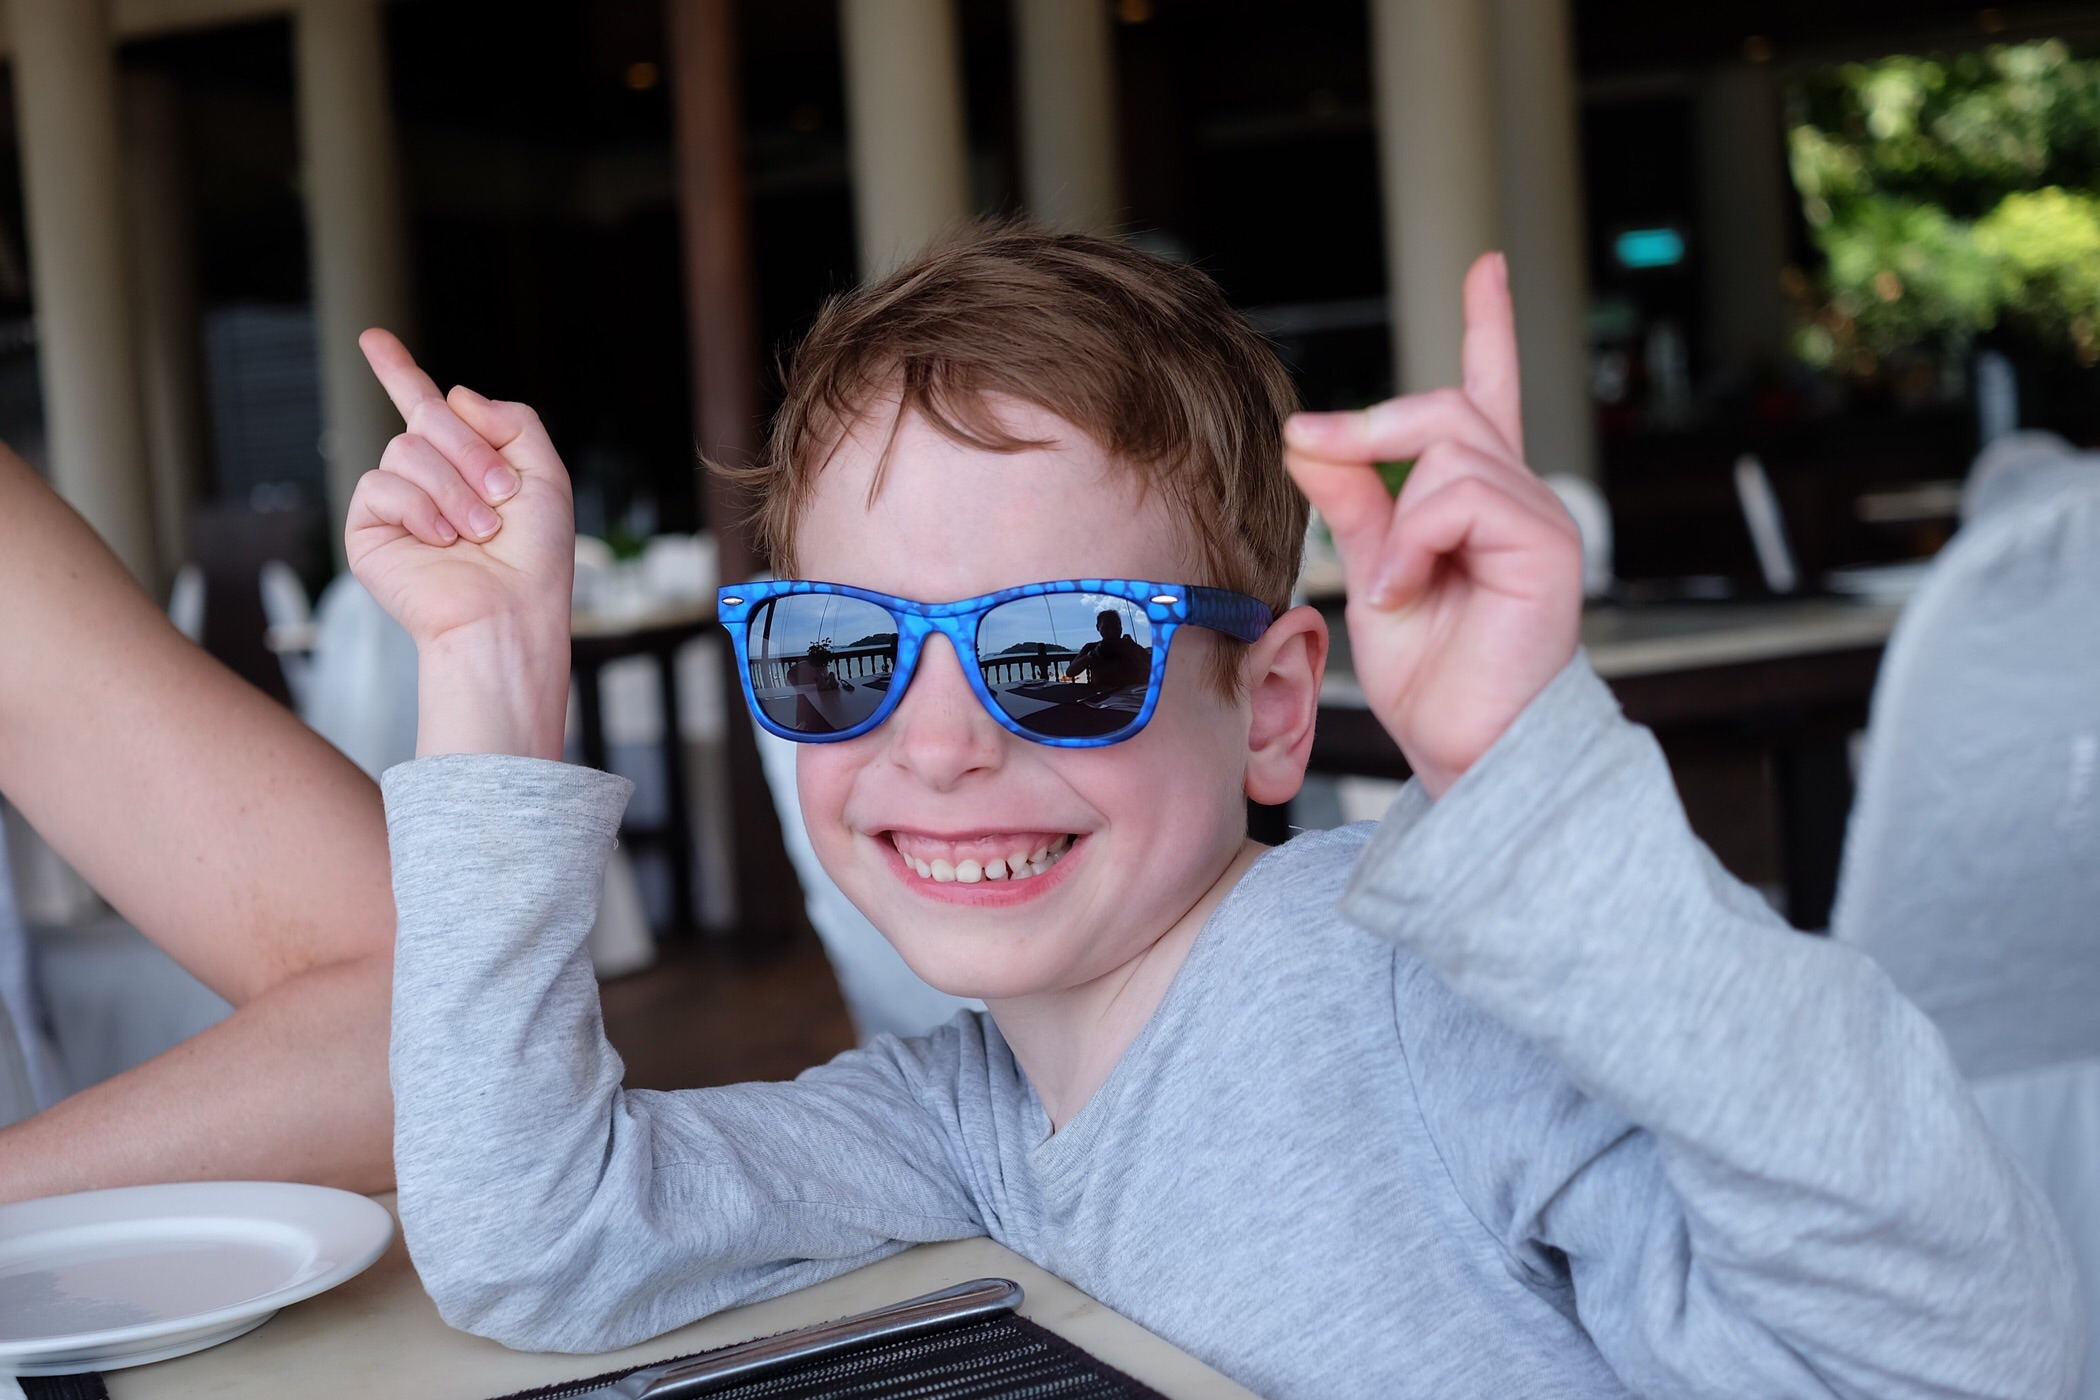 Rowan having fun at lunch — Langkawi